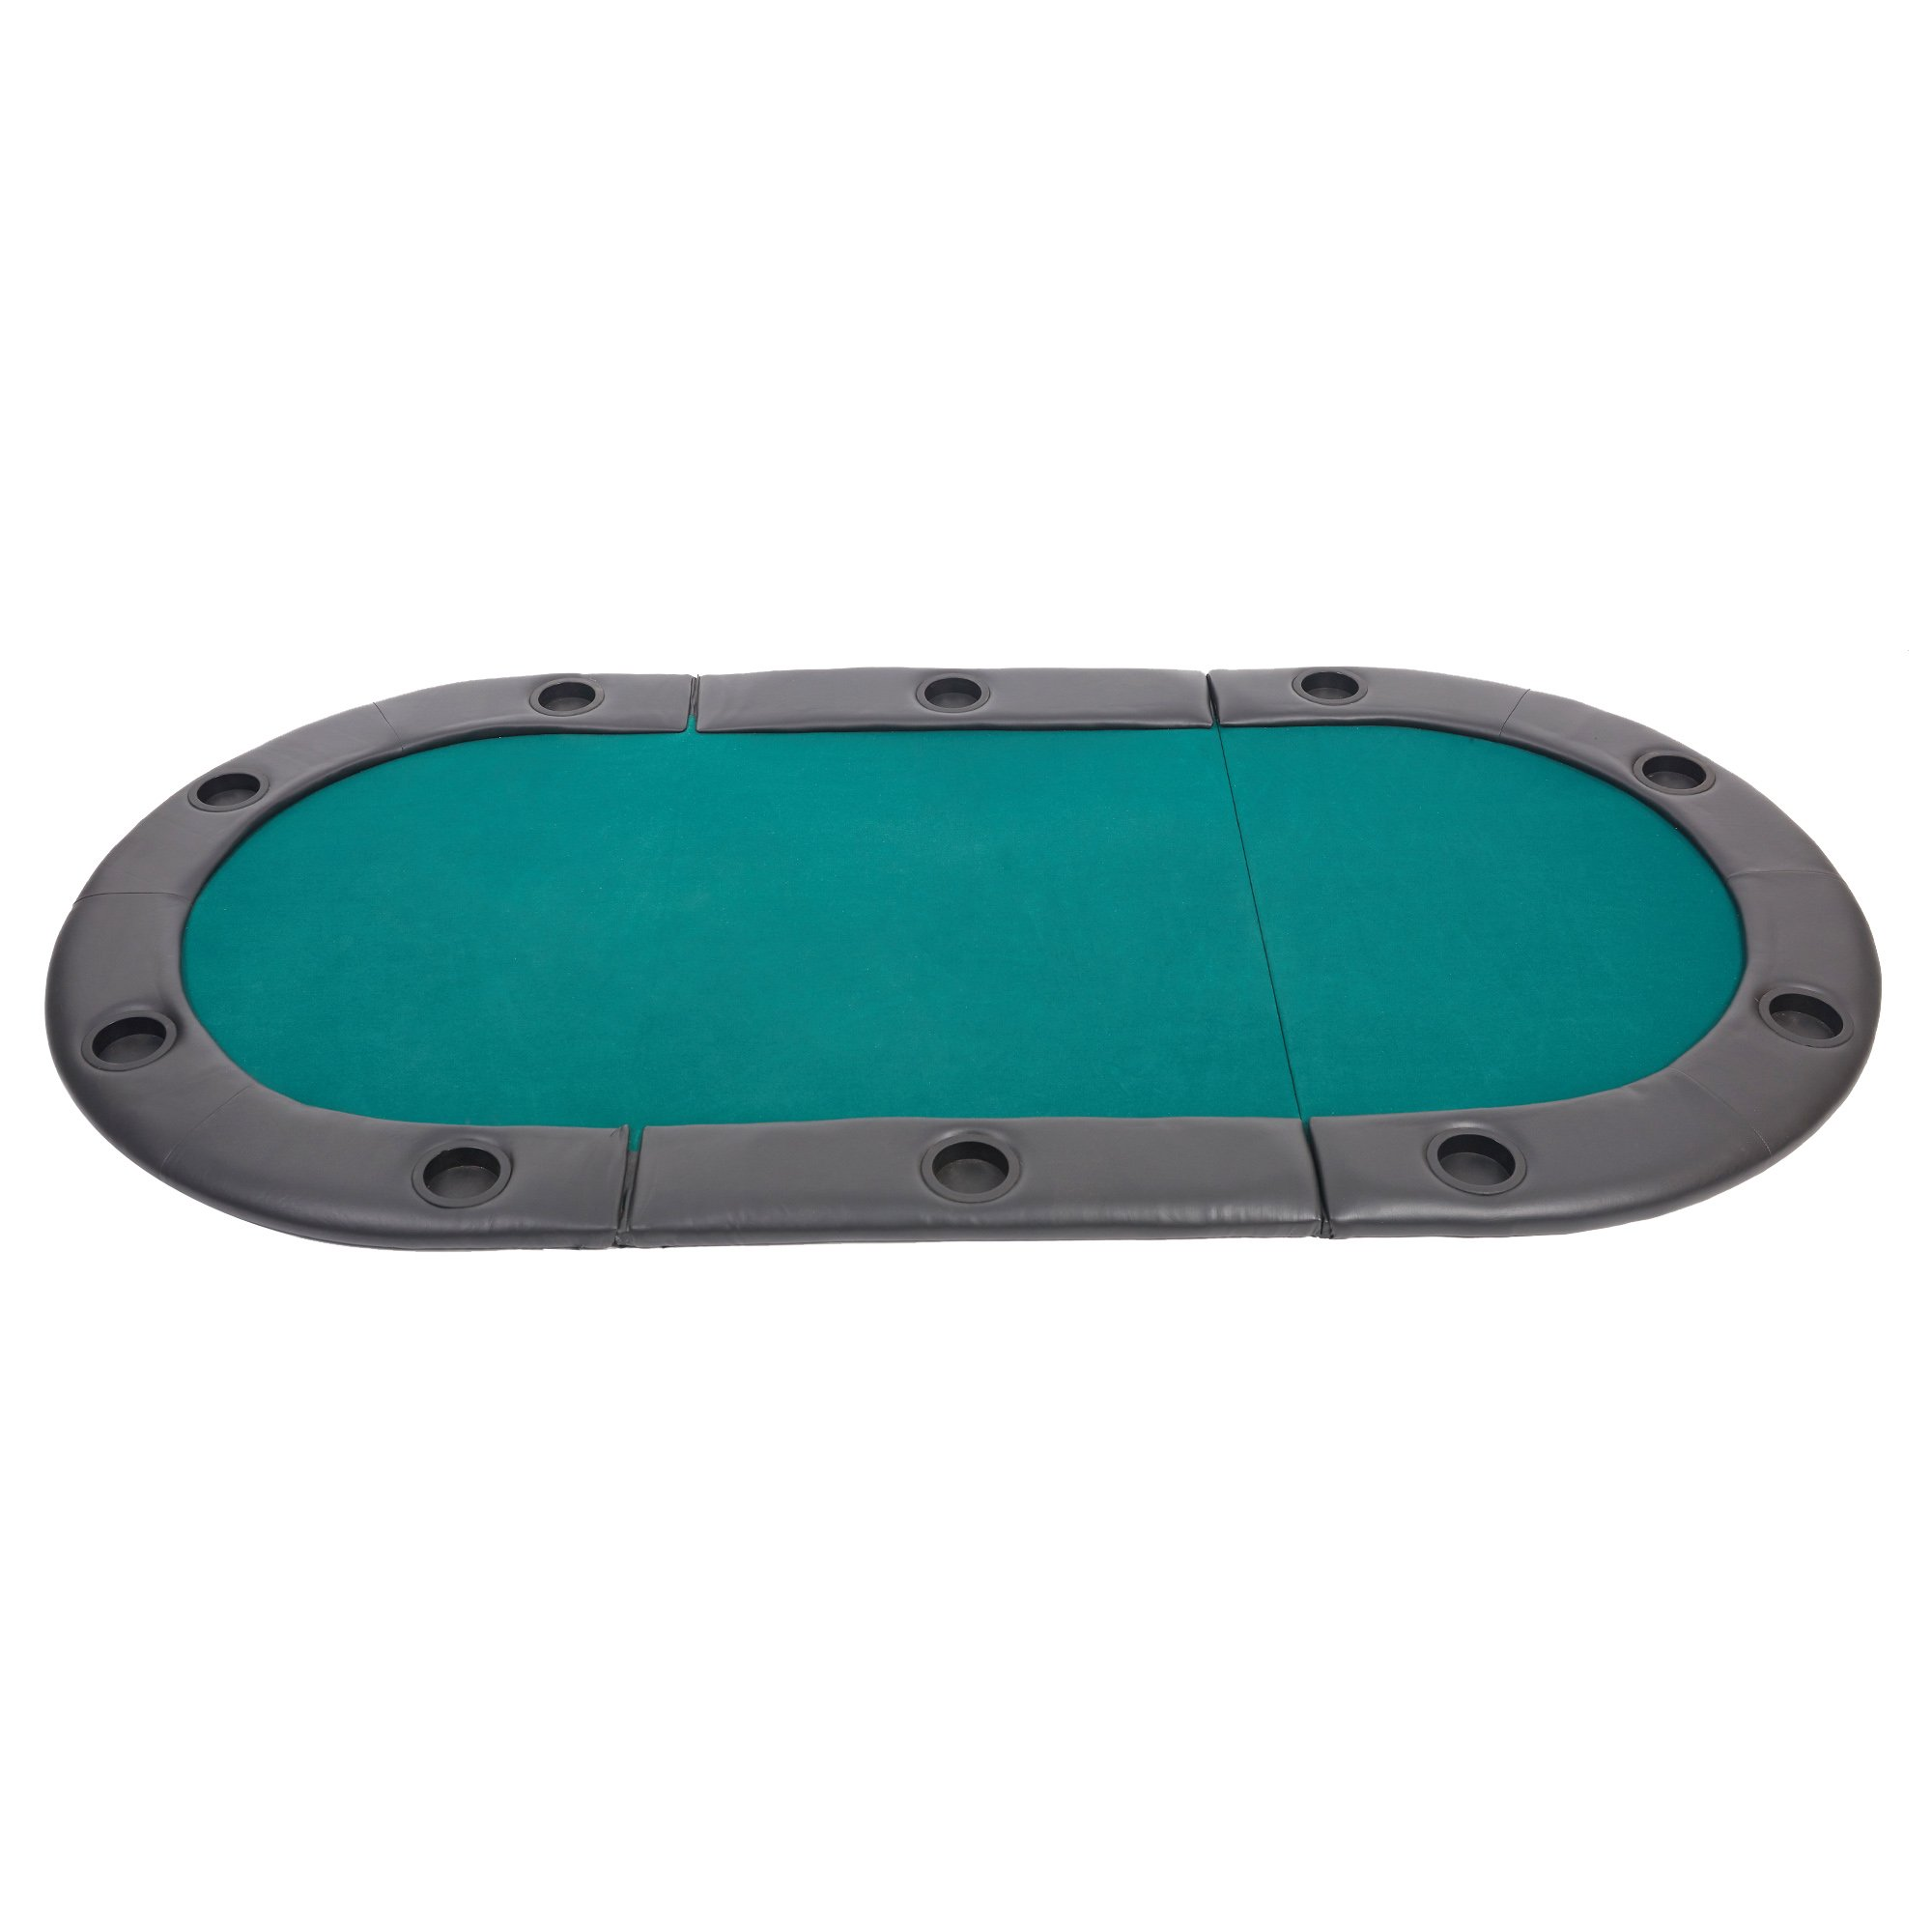 10 Player Poker Table Top 82'' Folding Poker Table Cover Mat 3 Fold Easy Storage with Soft Padded Rails Cup Holder for Guys Poker Night Family Christmas Halloween Party by LUCKYERMORE